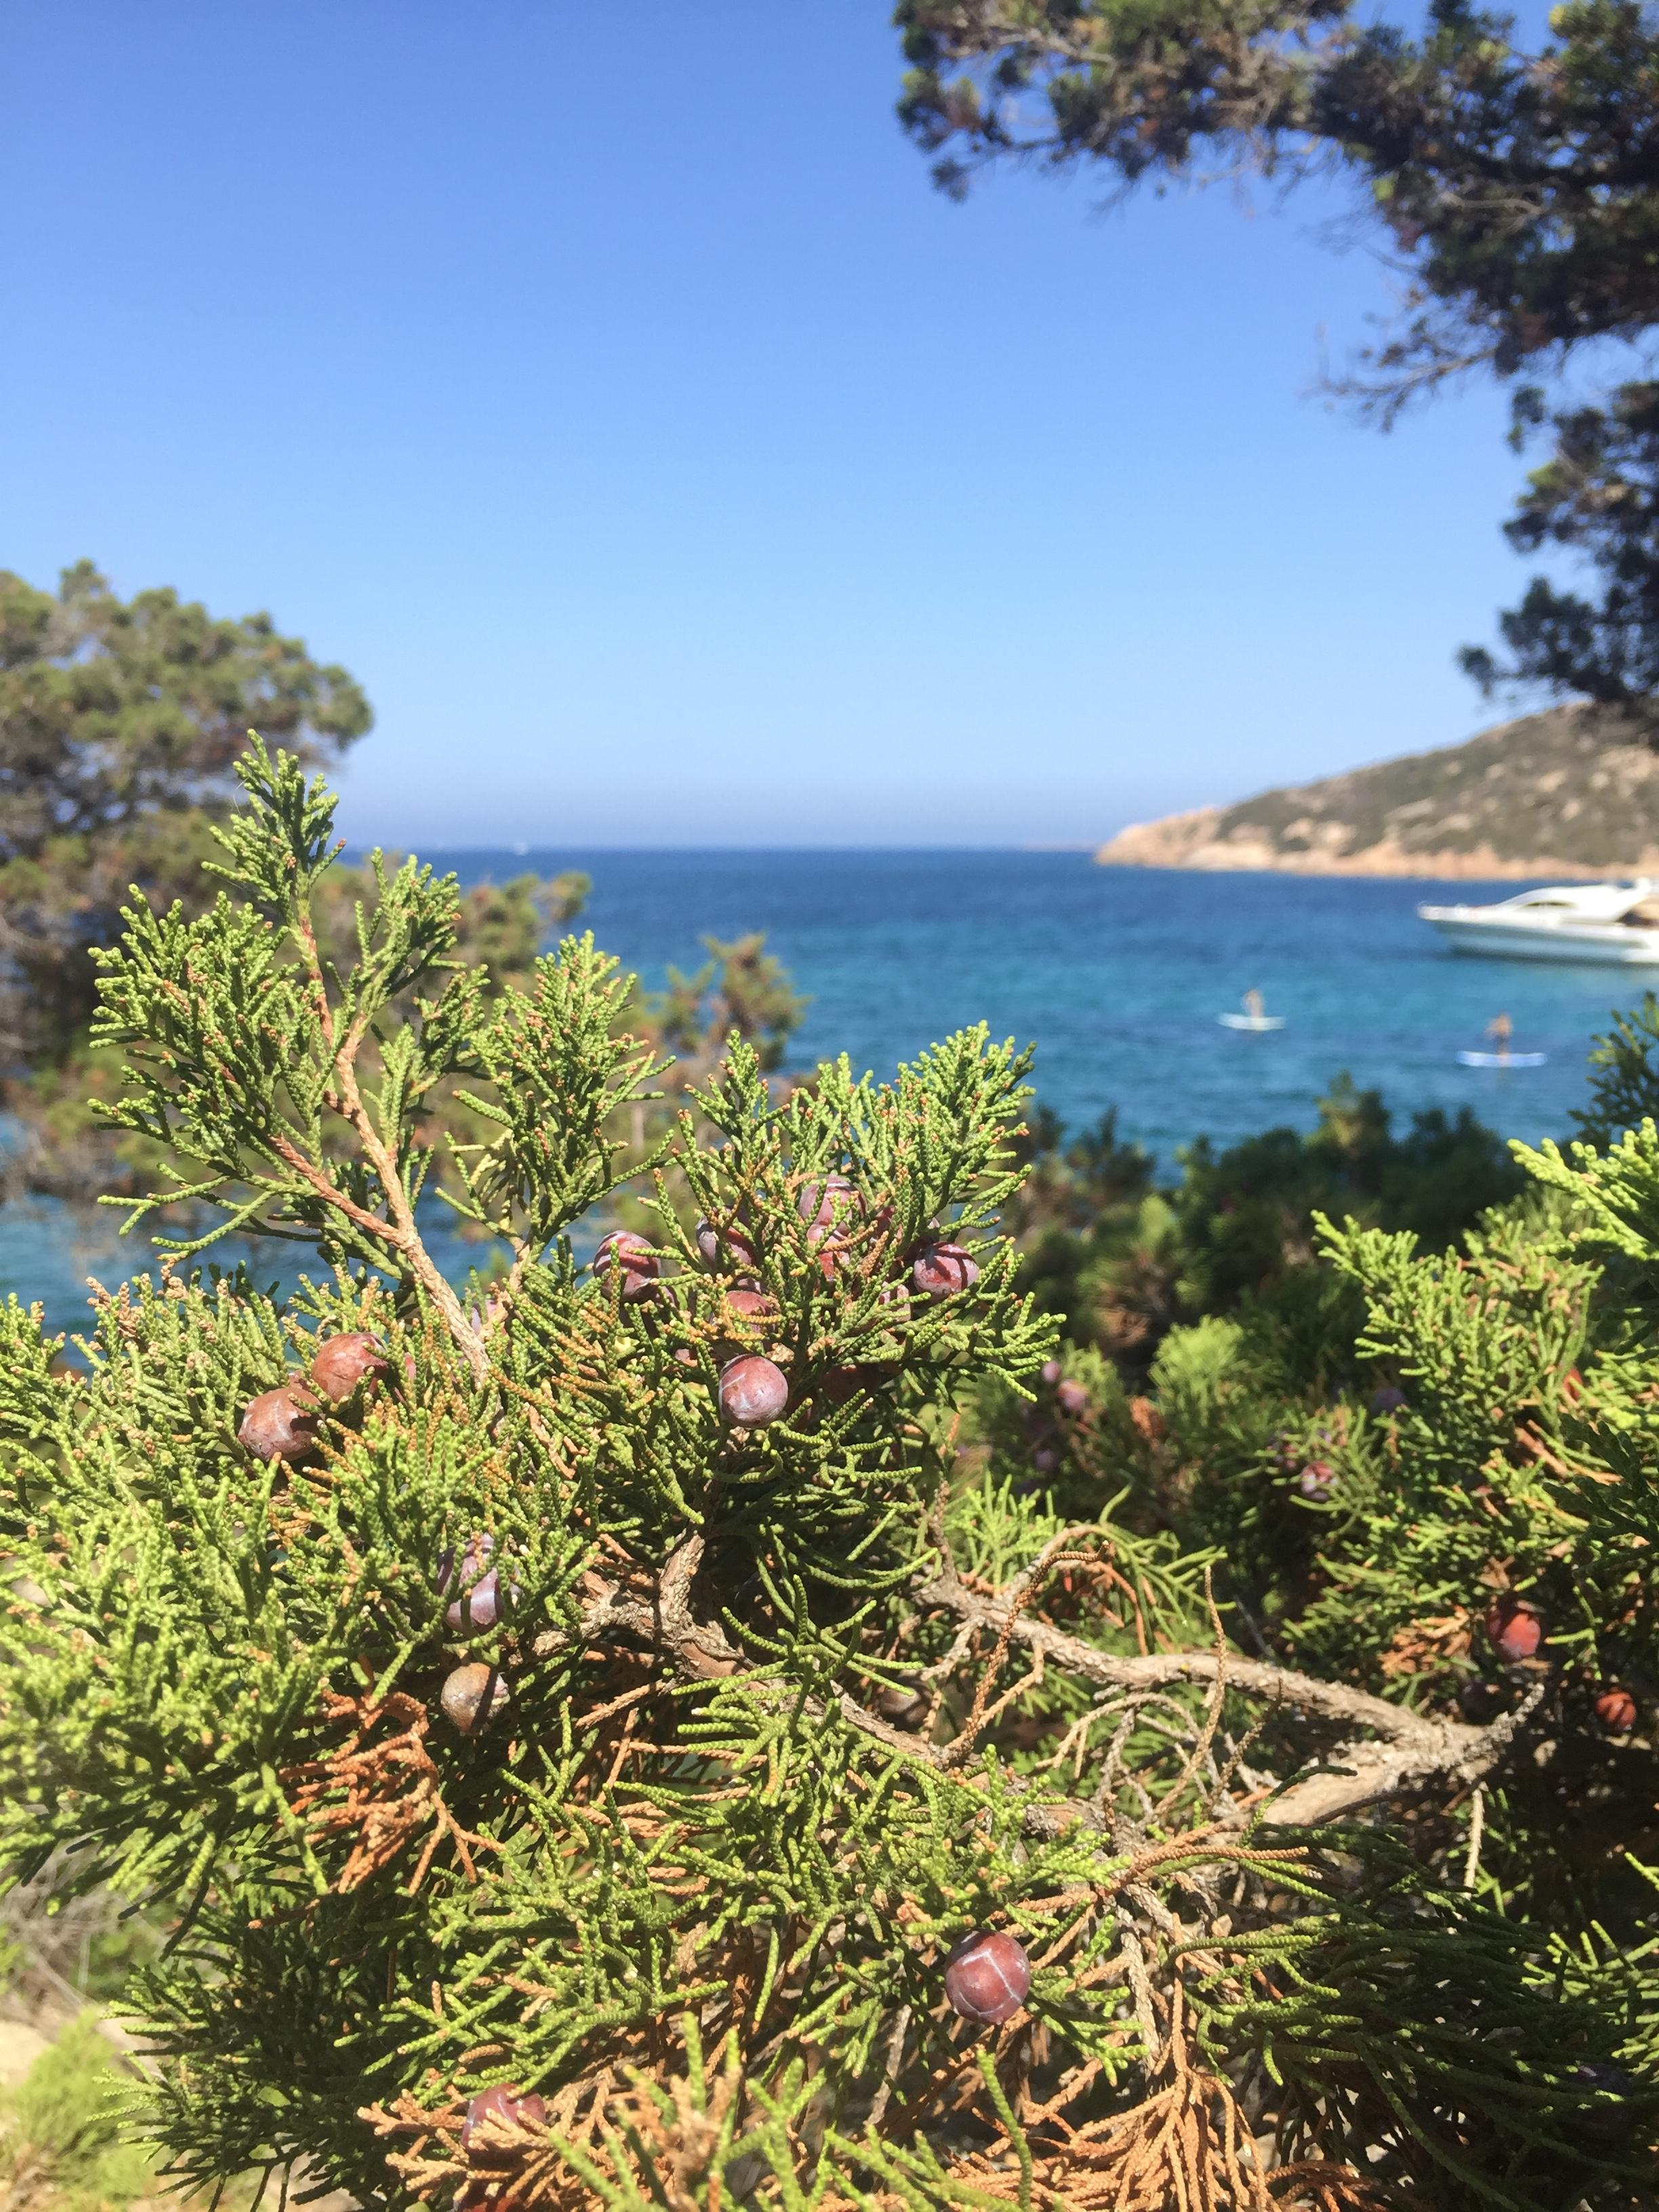 Here you can see Juniper berries ripening in the seaside sun of Sardinia. He described the aromas of the island as truly amazing! (Image: Courtesy Nicholas Stefanelli)